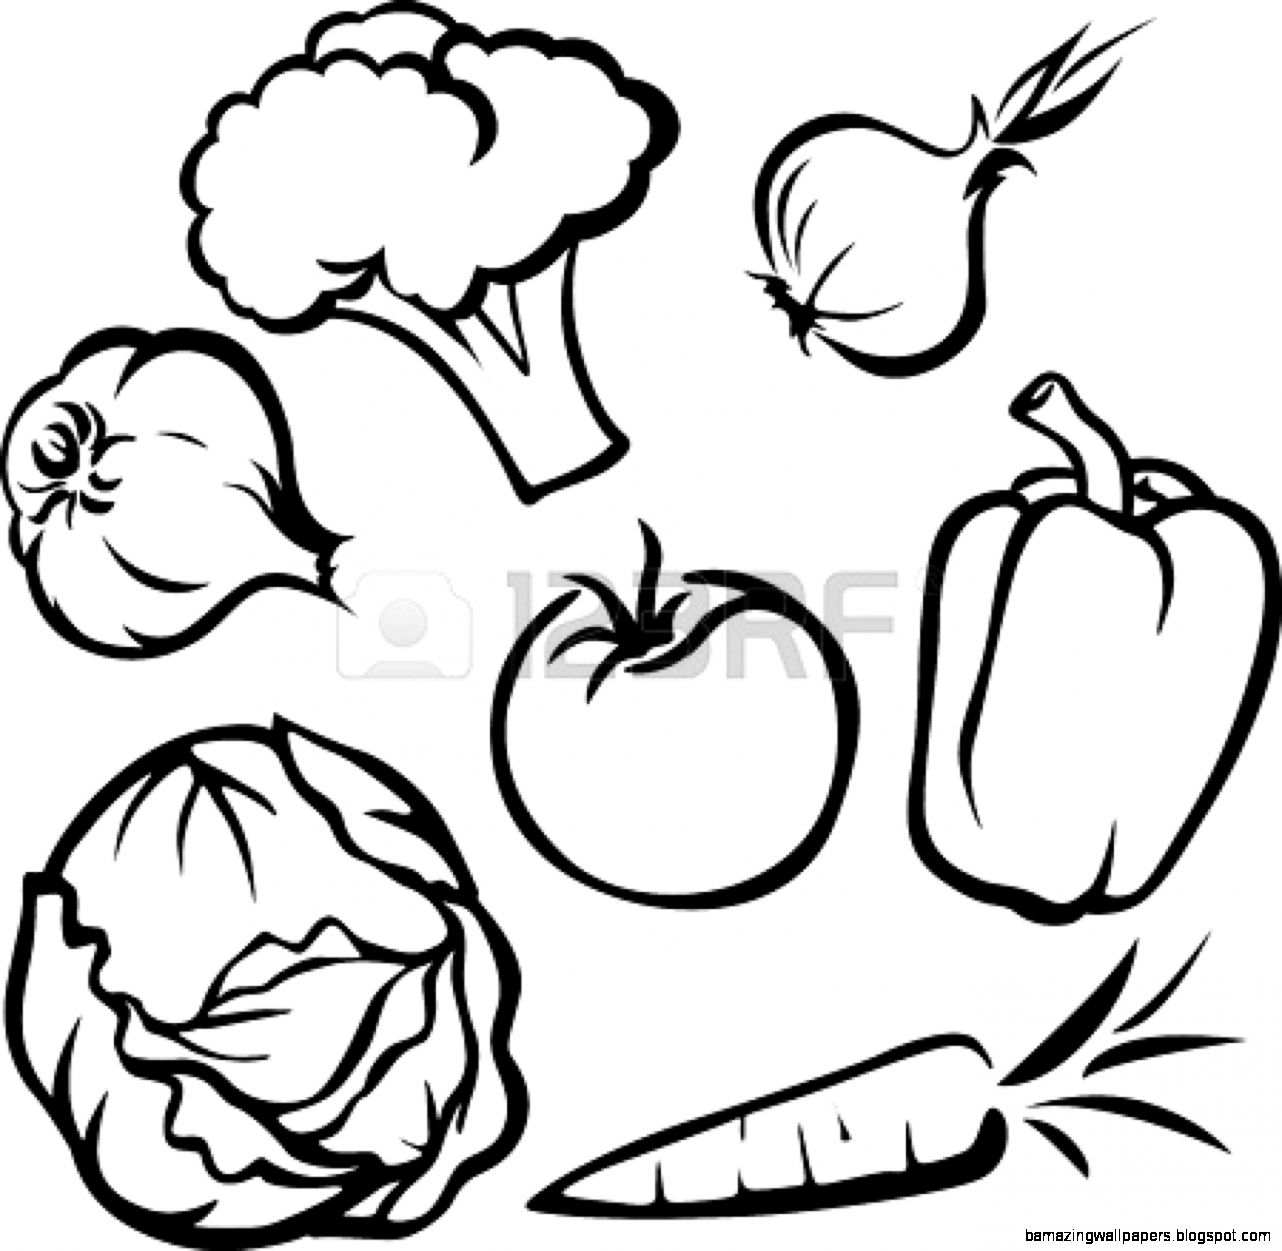 outline pictures of fruits and vegetables pin on coloring fruits and vegetables pictures fruits outline vegetables and of